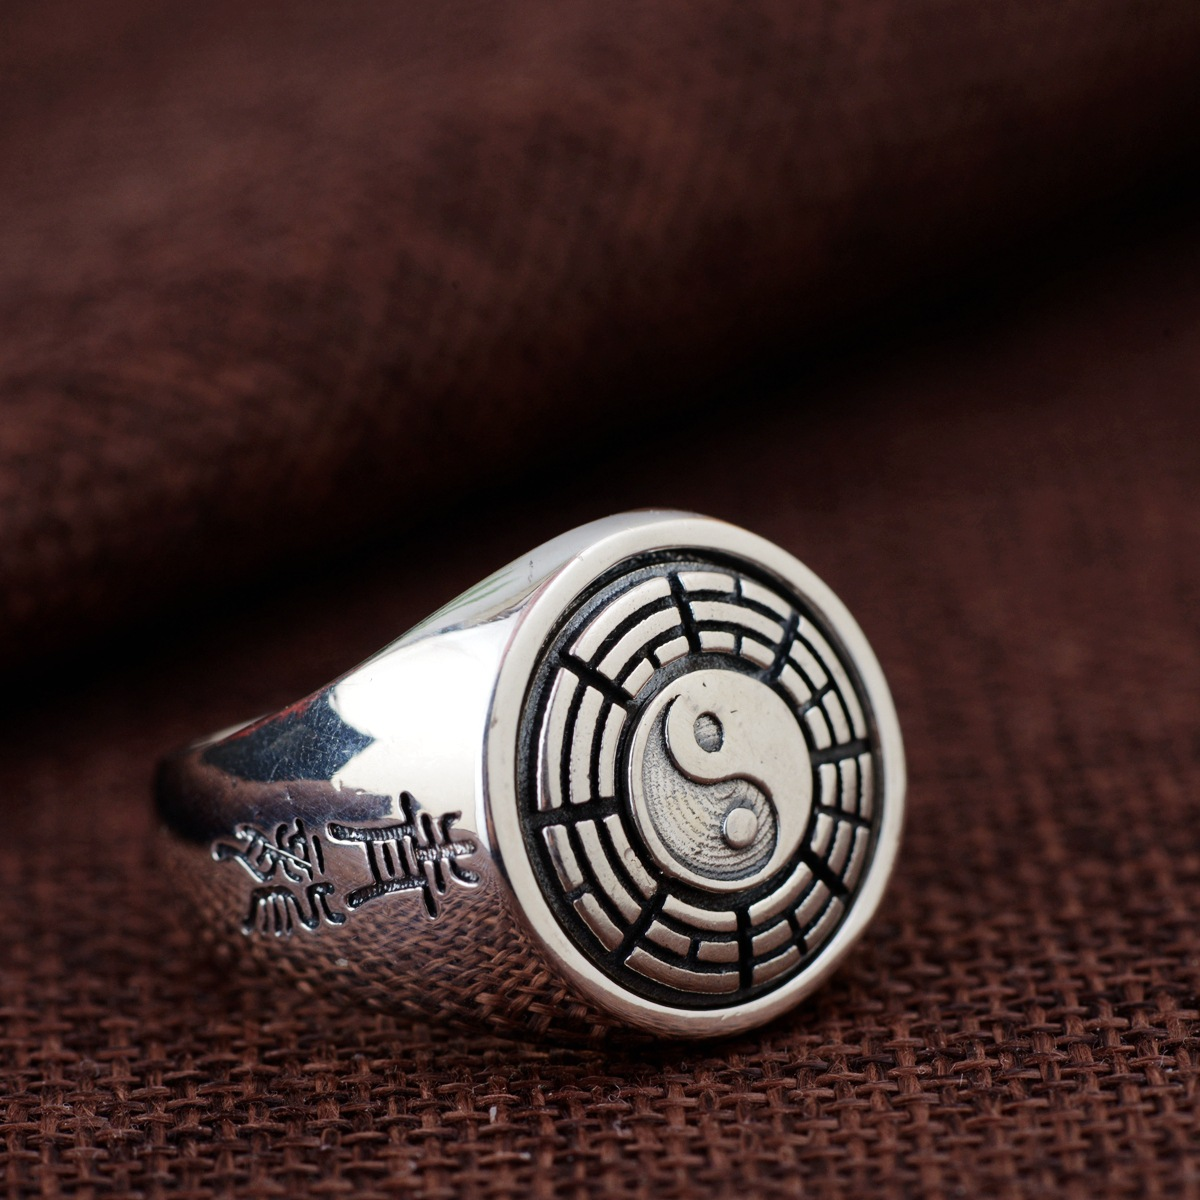 2018 New Arrival Wholesale Jewelry Line Thai Silver Ring S925 Pure Silver Antique Style Men Gossip Rotating Ring s925 silver antique style men open world peace ring